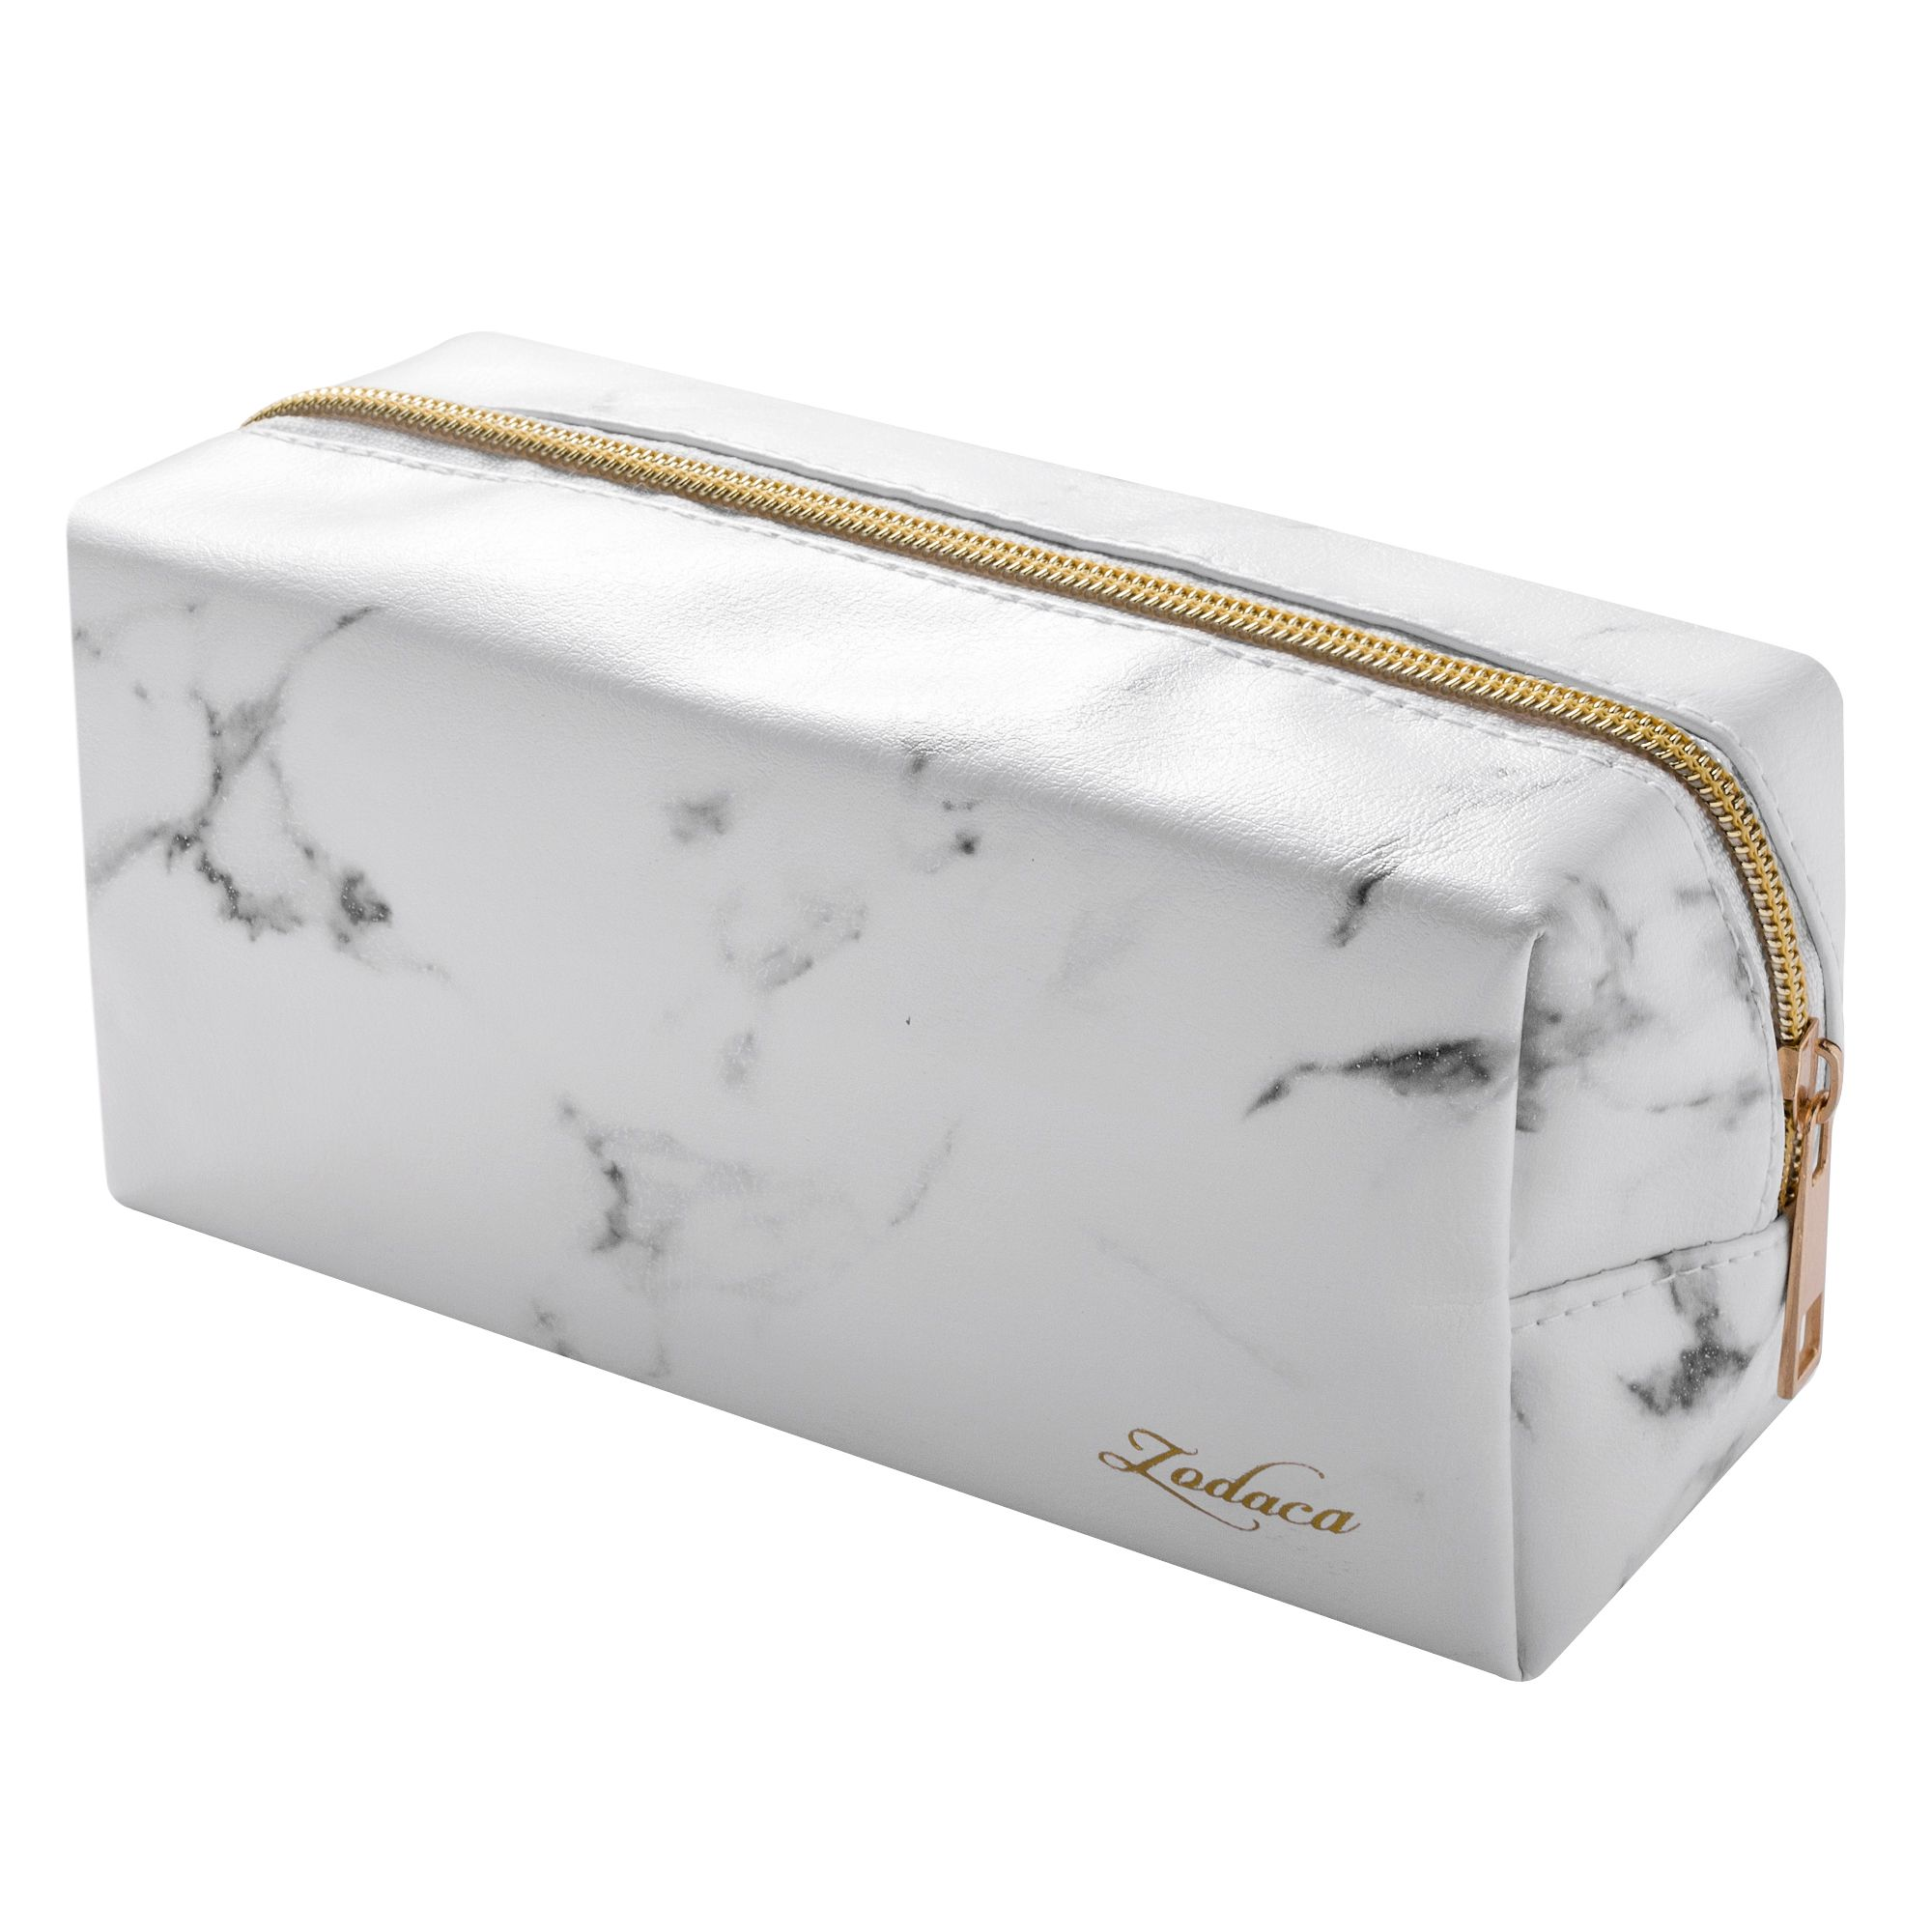 Zodaca Marble Patterned Cosmetic Makeup Toiletry Beauty Travel Zipper Bag Pouch